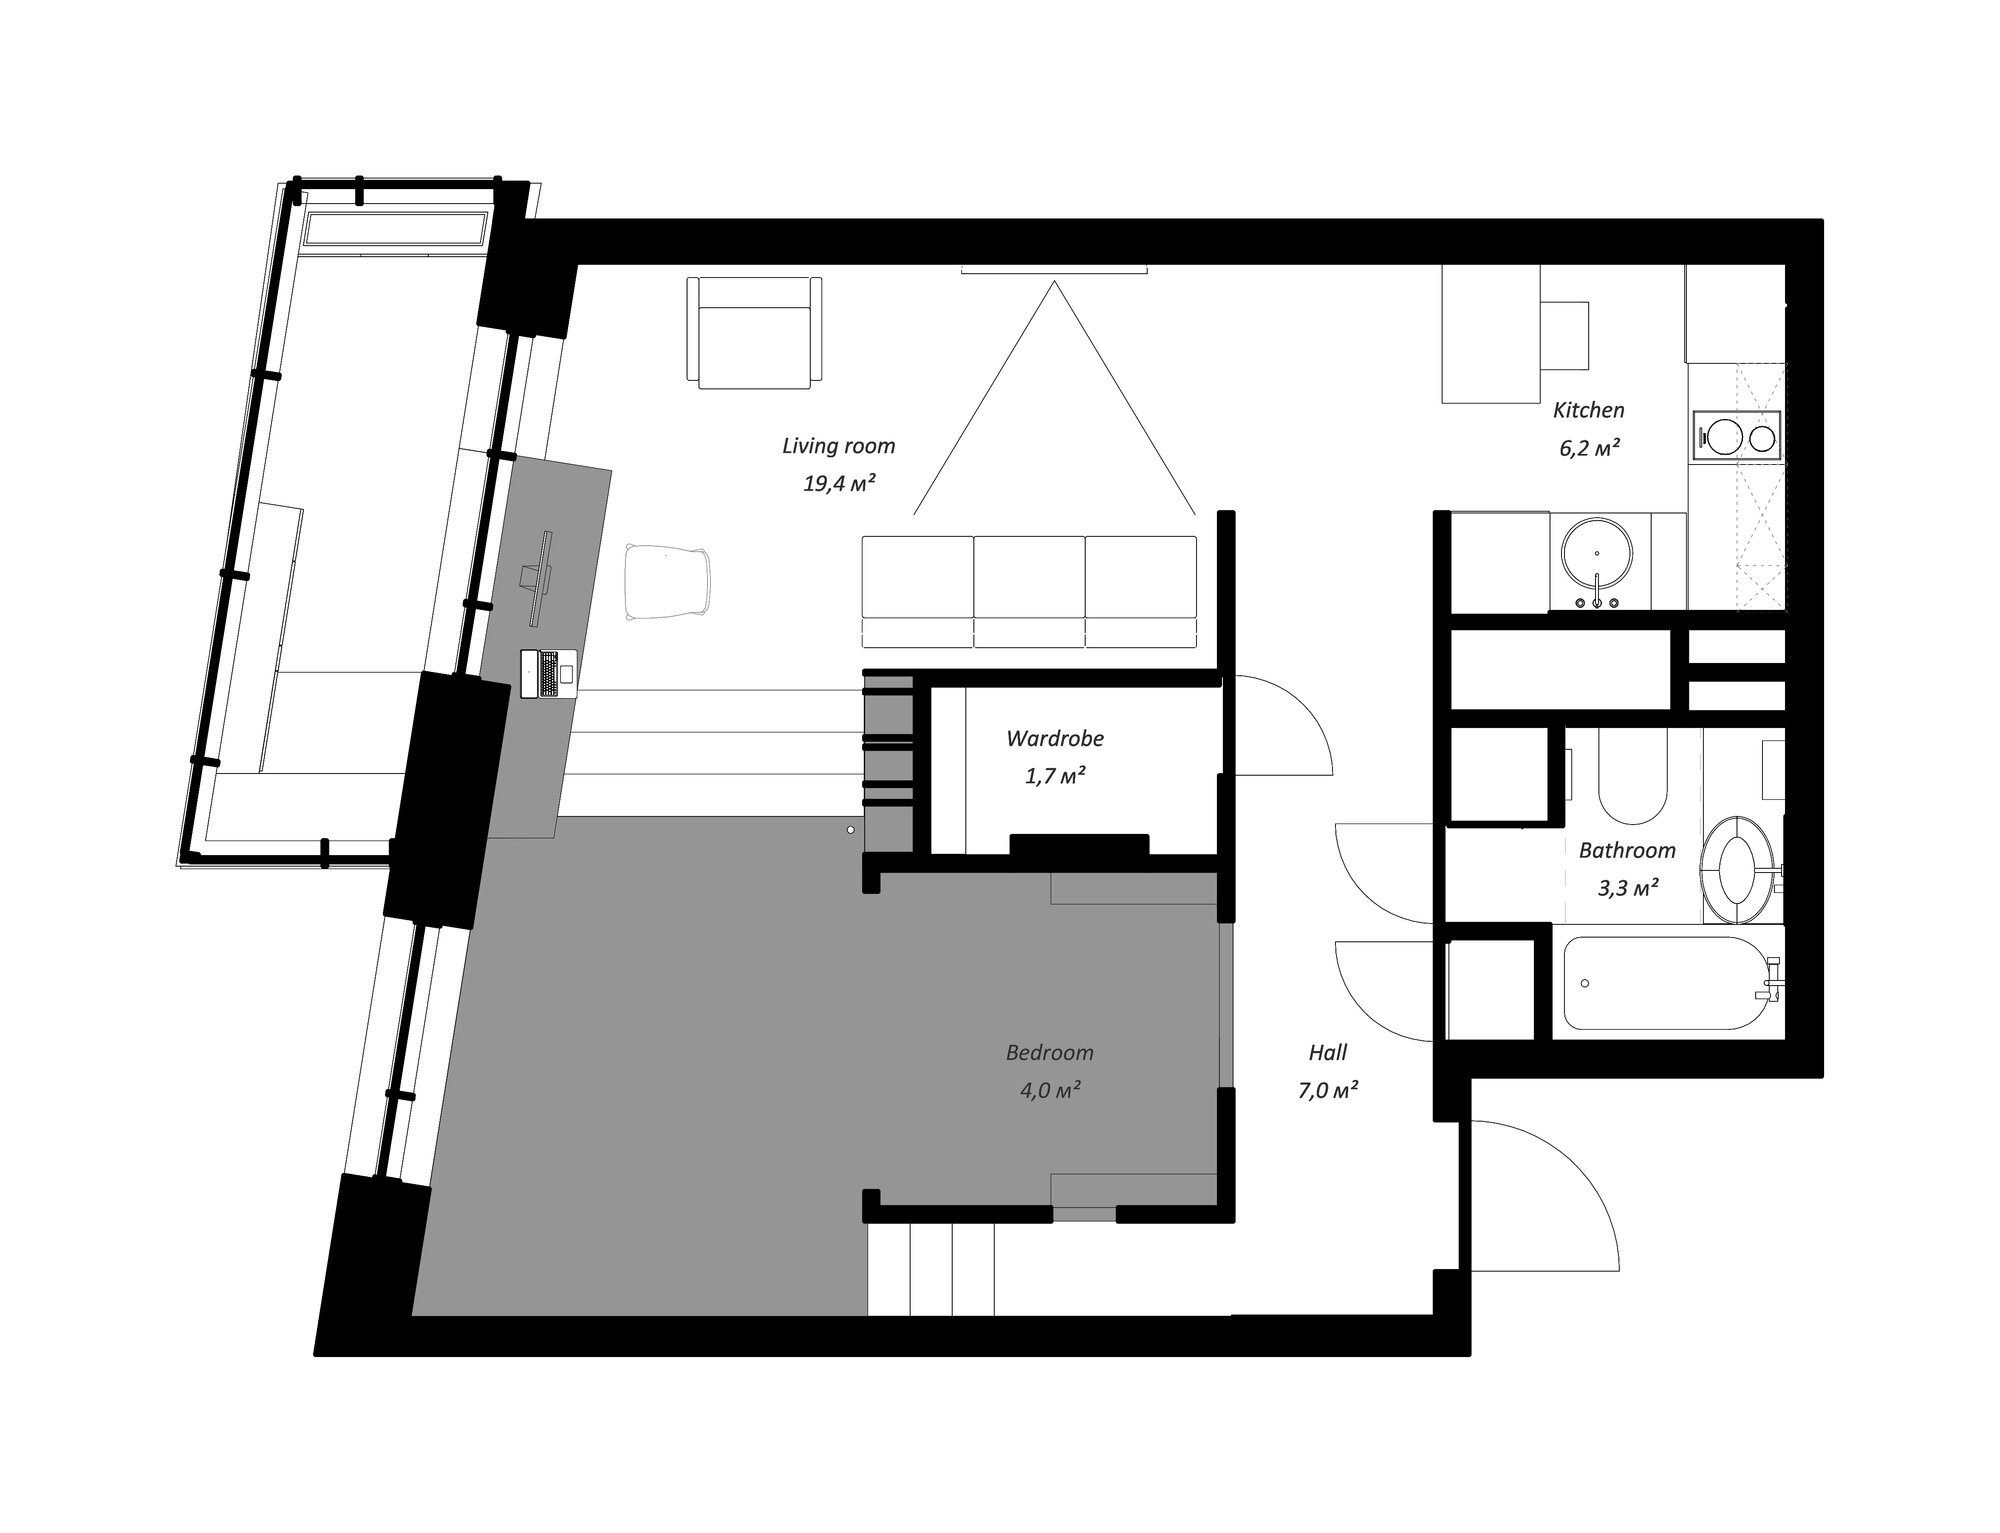 Gorki-Ruetemple-Moscow-Floor-Plan-Humble-Homes